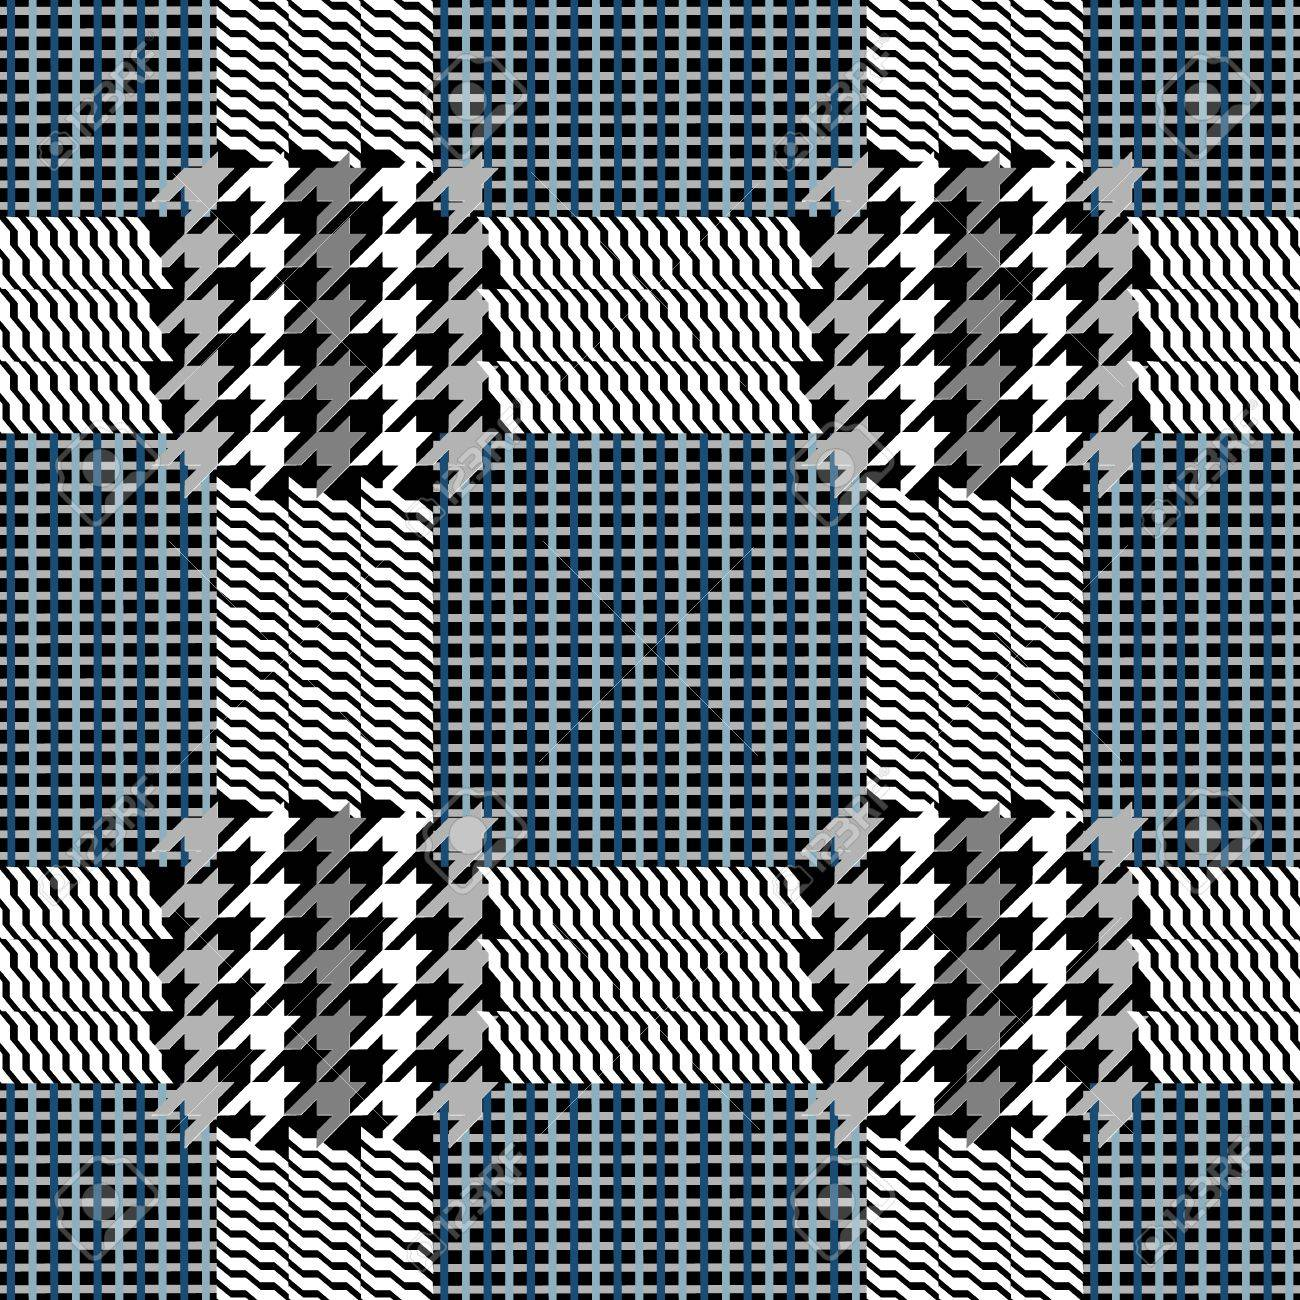 Classical English hounds tooth print. Retro textile design collection. - 67346015